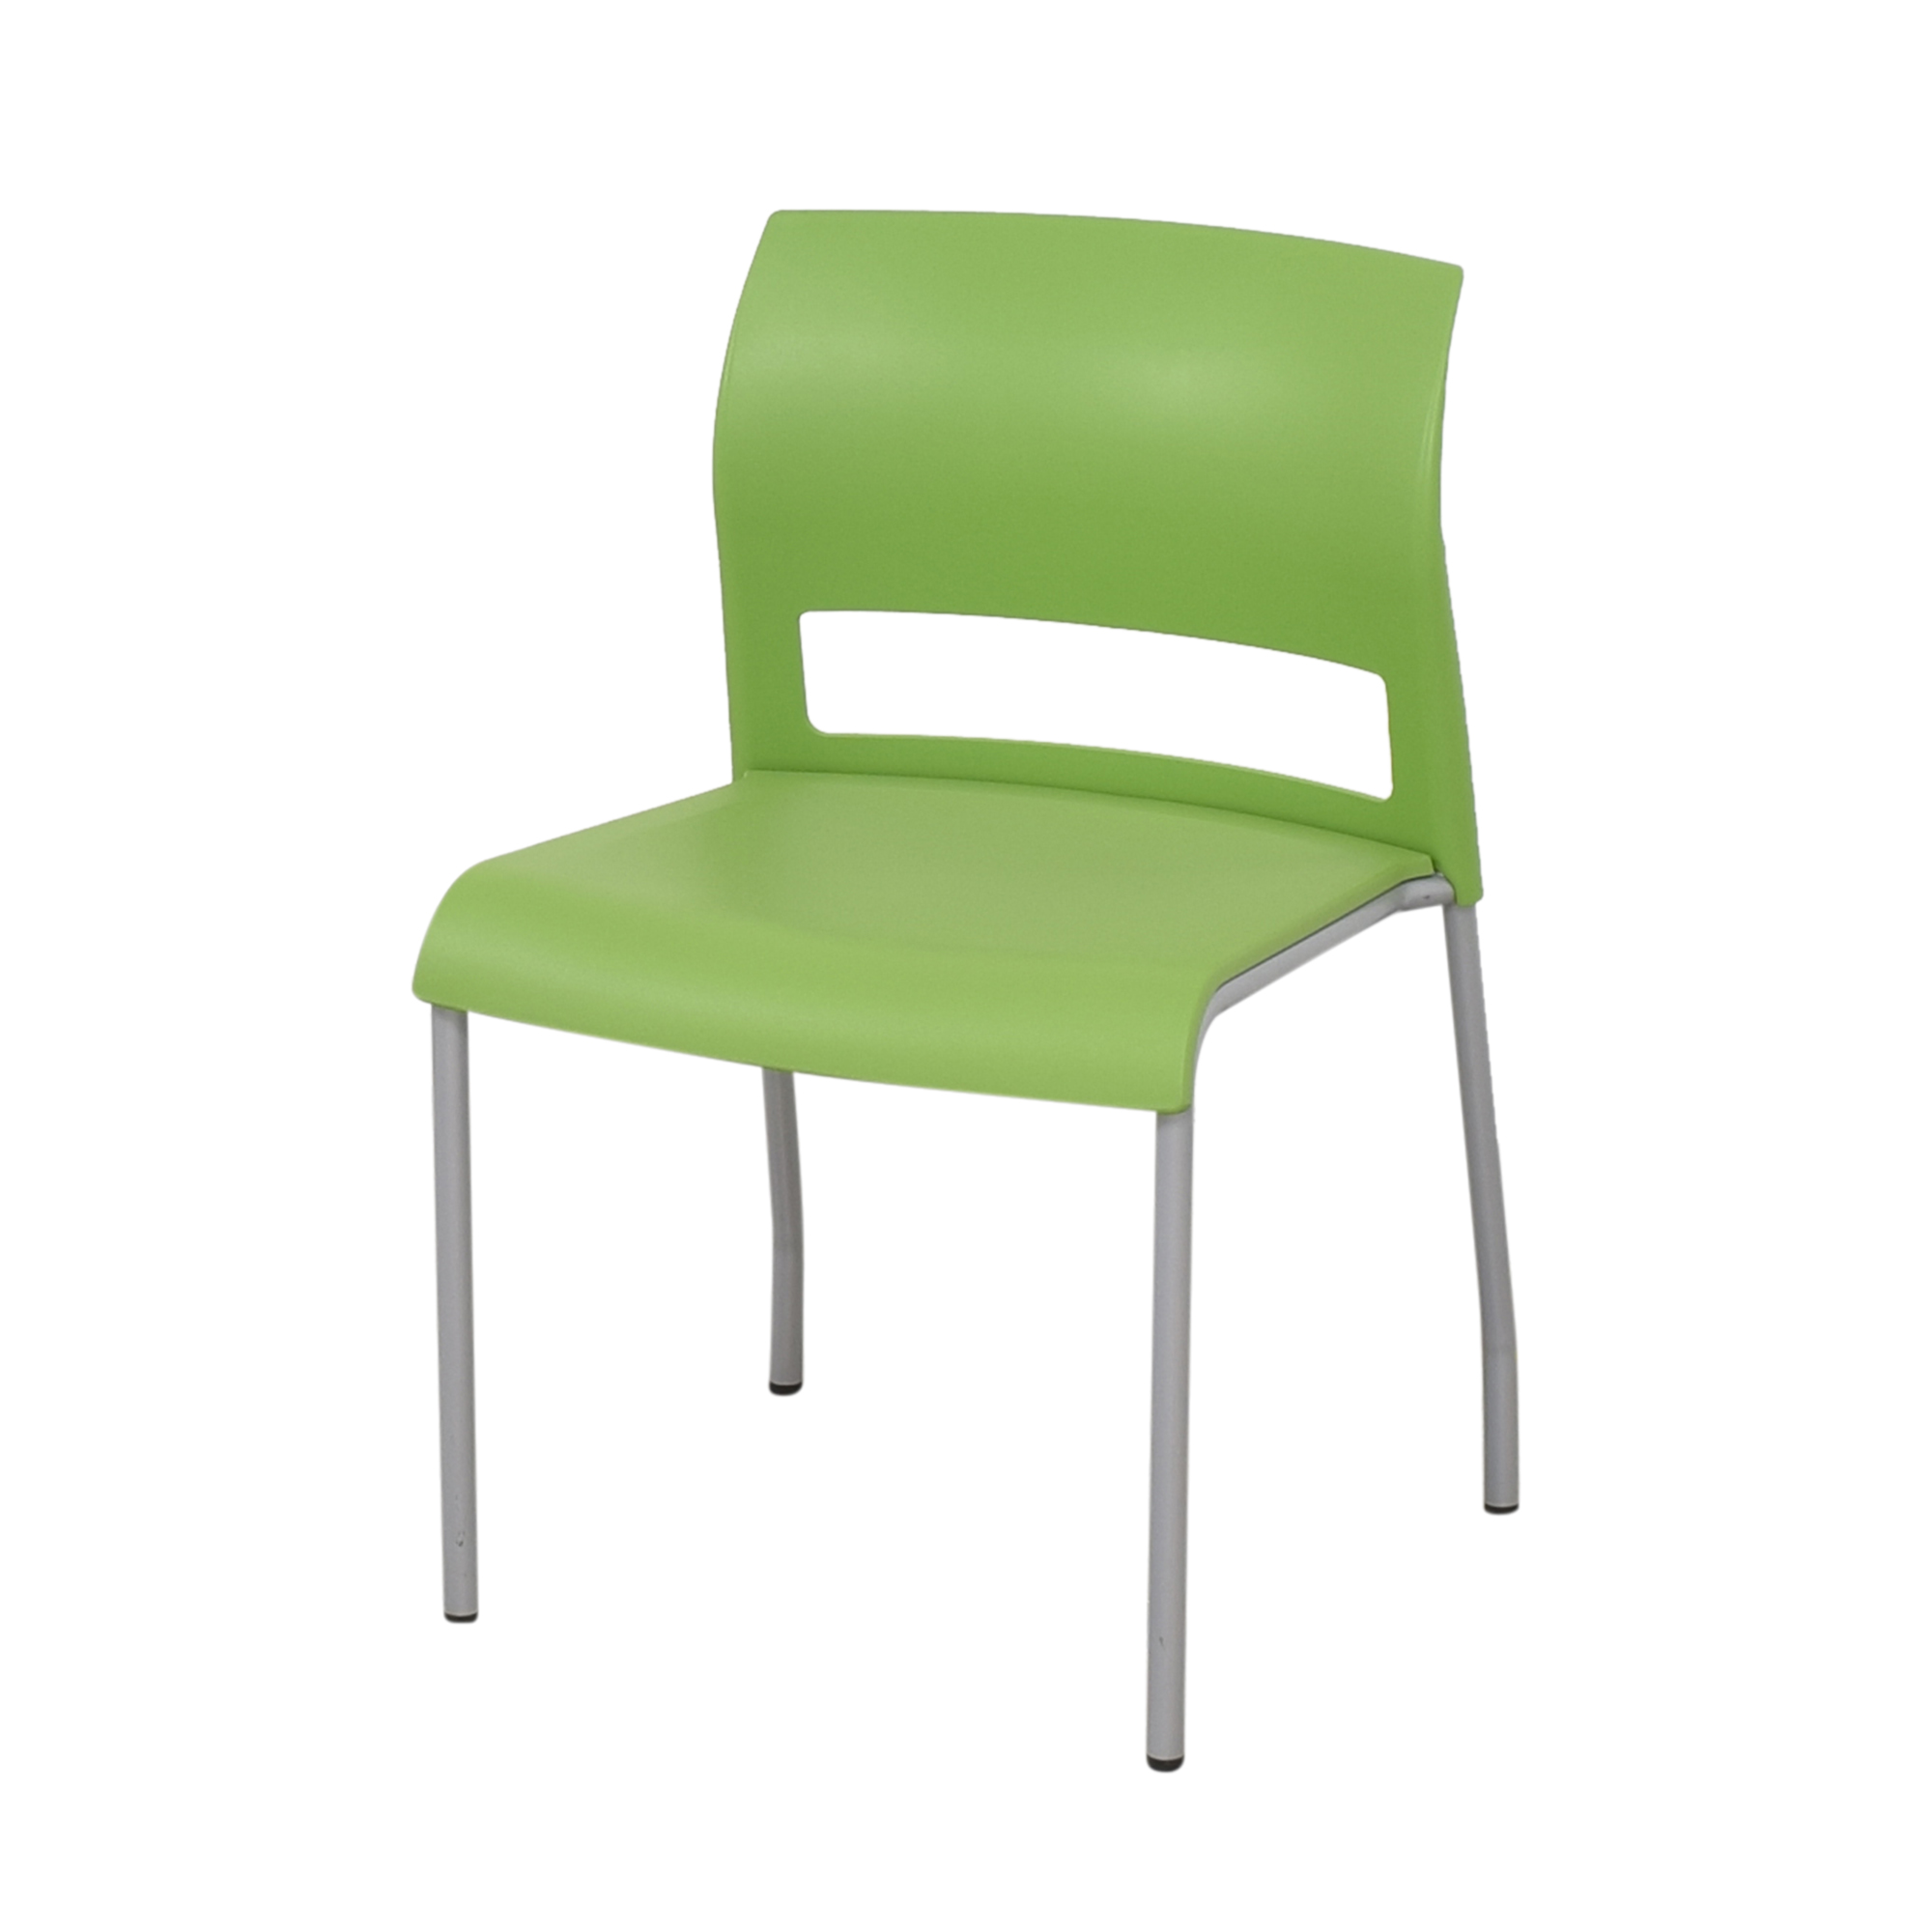 Steelcase Steelcase Move Stackable Chairs Chairs